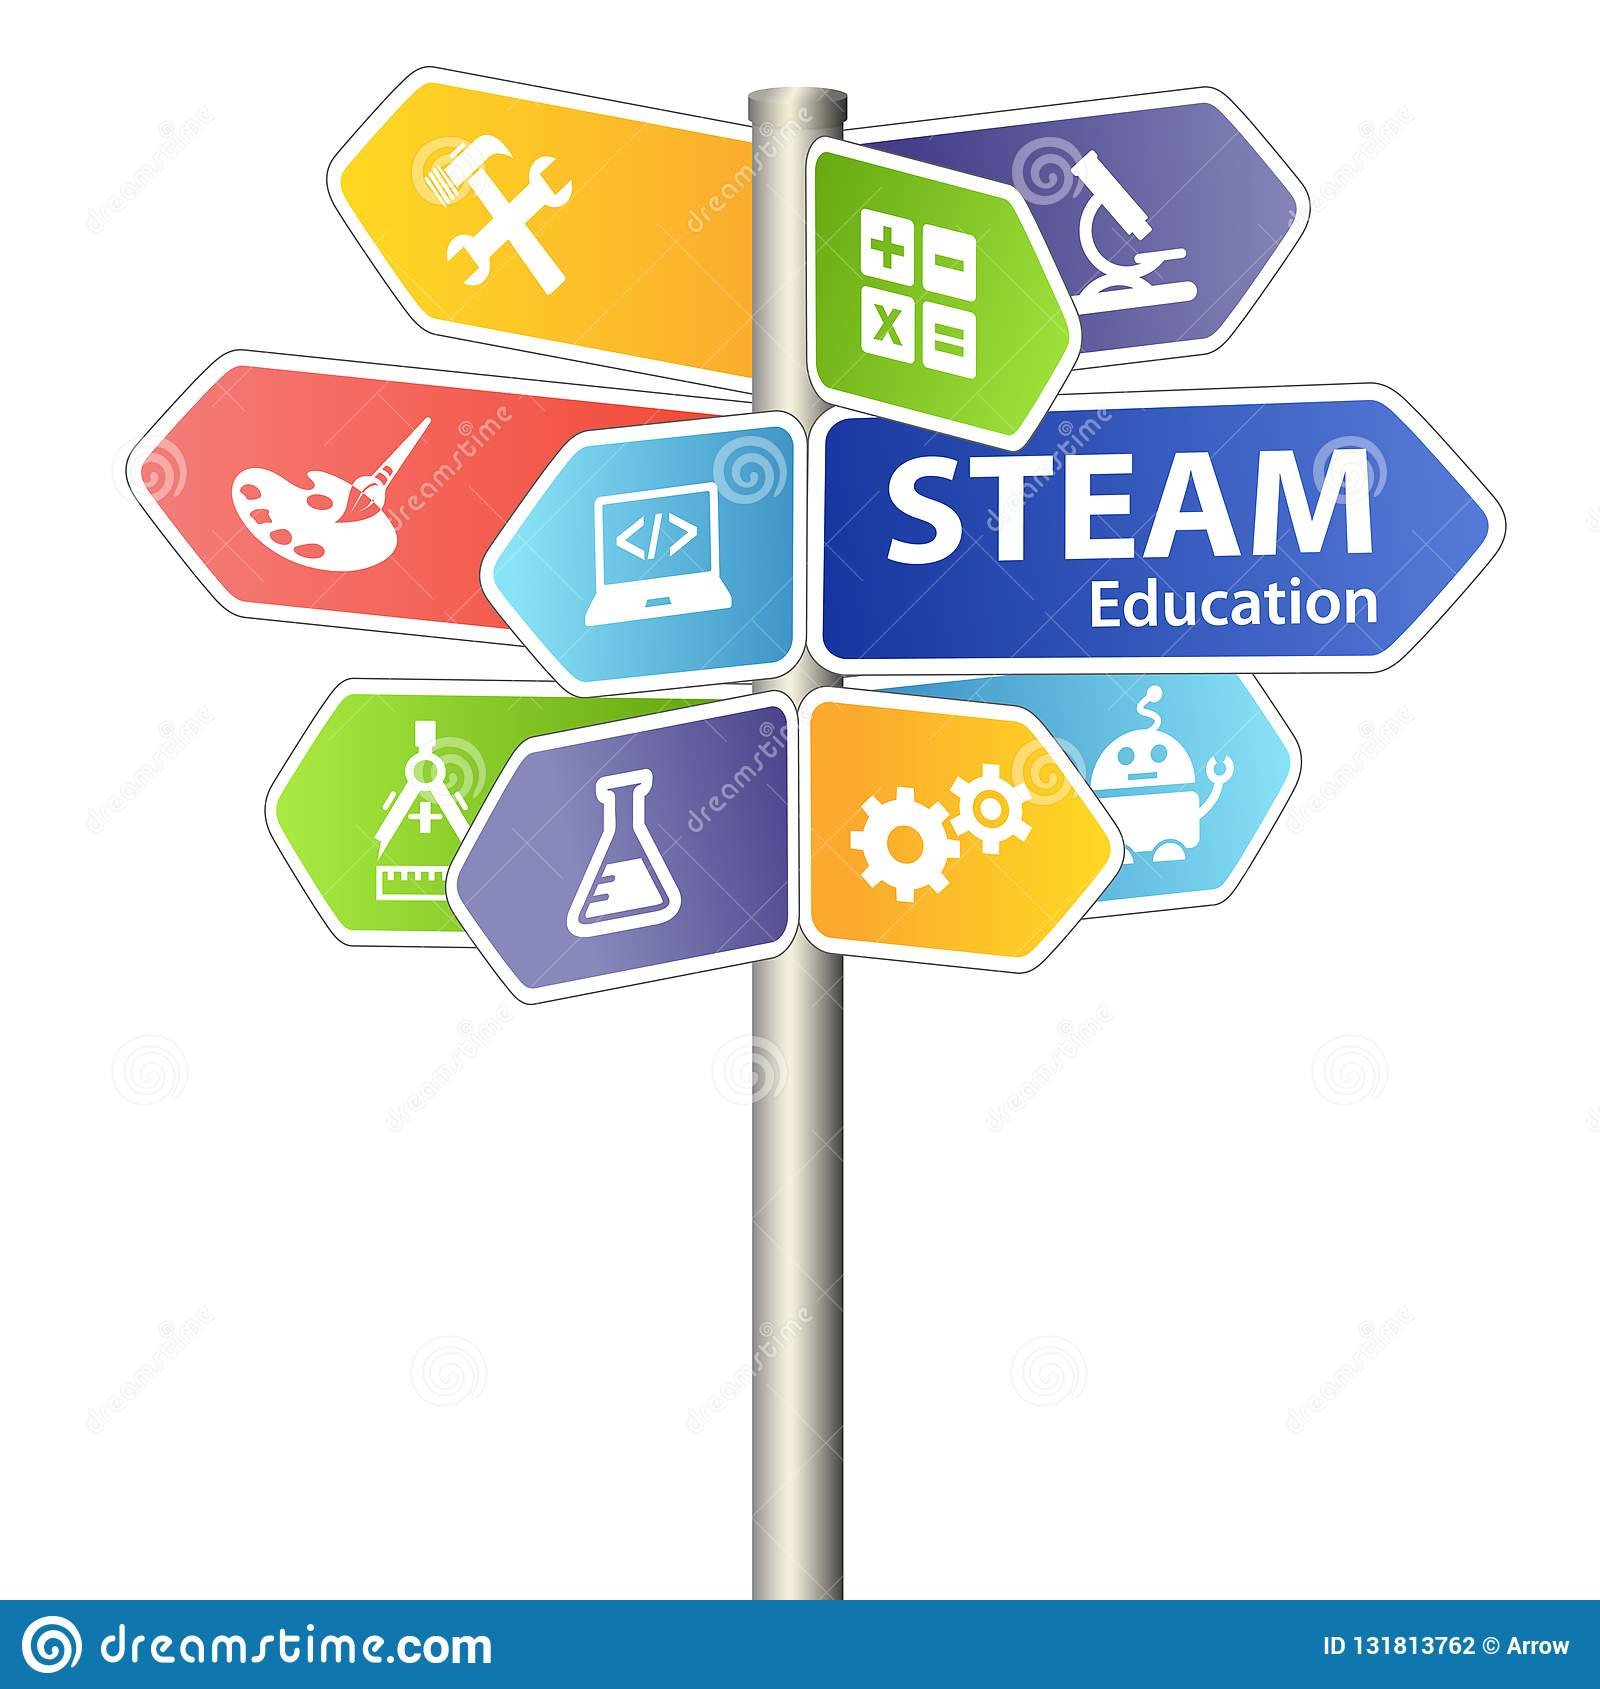 Science Technology Engineering And Math Education For: STEAM STEM Education Sign. Science Technology Engineering